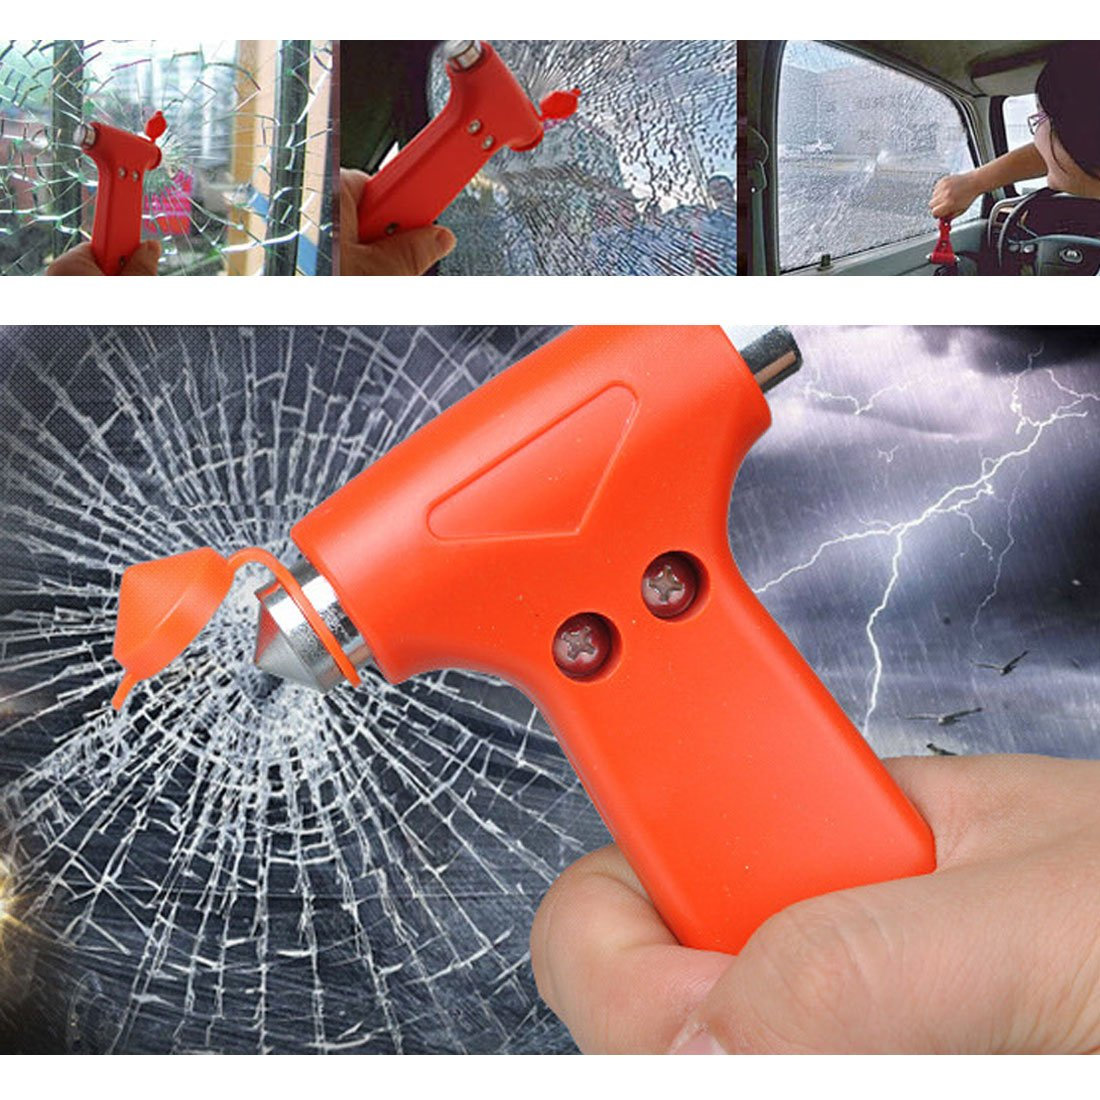 uxcell Plastic Handle Car Auto Safety Emergency Break Hammer 133mm Long 2pcs by uxcell (Image #6)